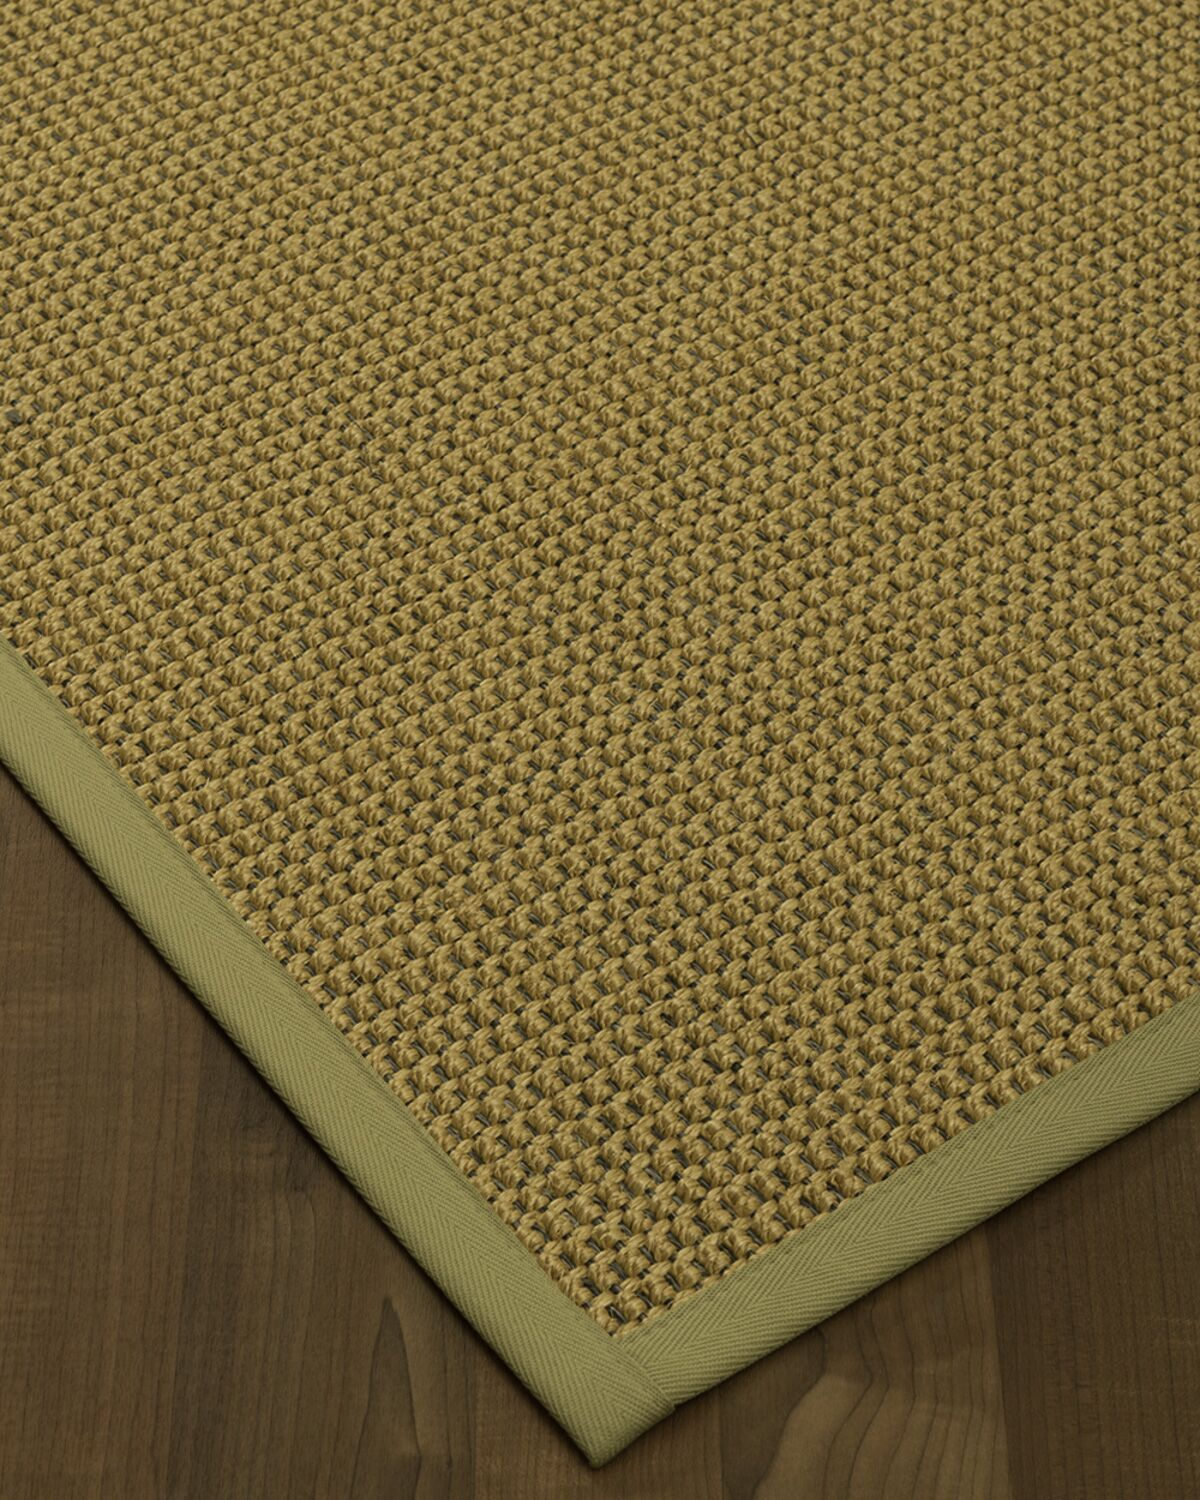 Atia Border Hand-Woven Beige/Sand Area Rug Rug Size: Rectangle 9' x 12', Rug Pad Included: Yes